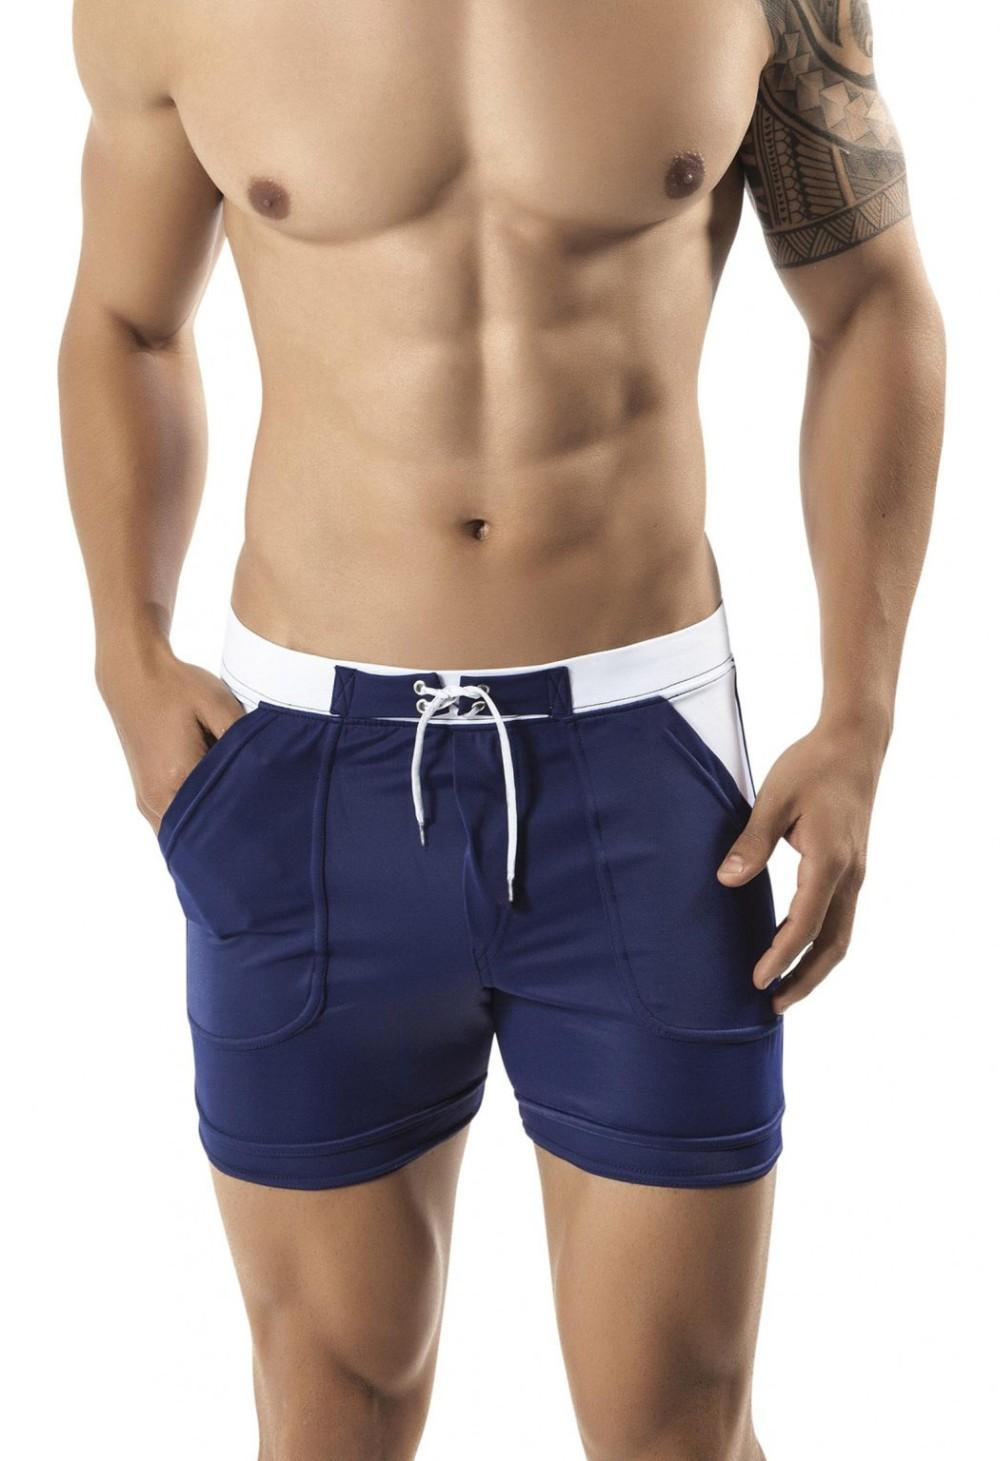 512ecbf3889 Bathing Suits Man Men  S Swimwear Swim Beach Board Shorts Swim ...